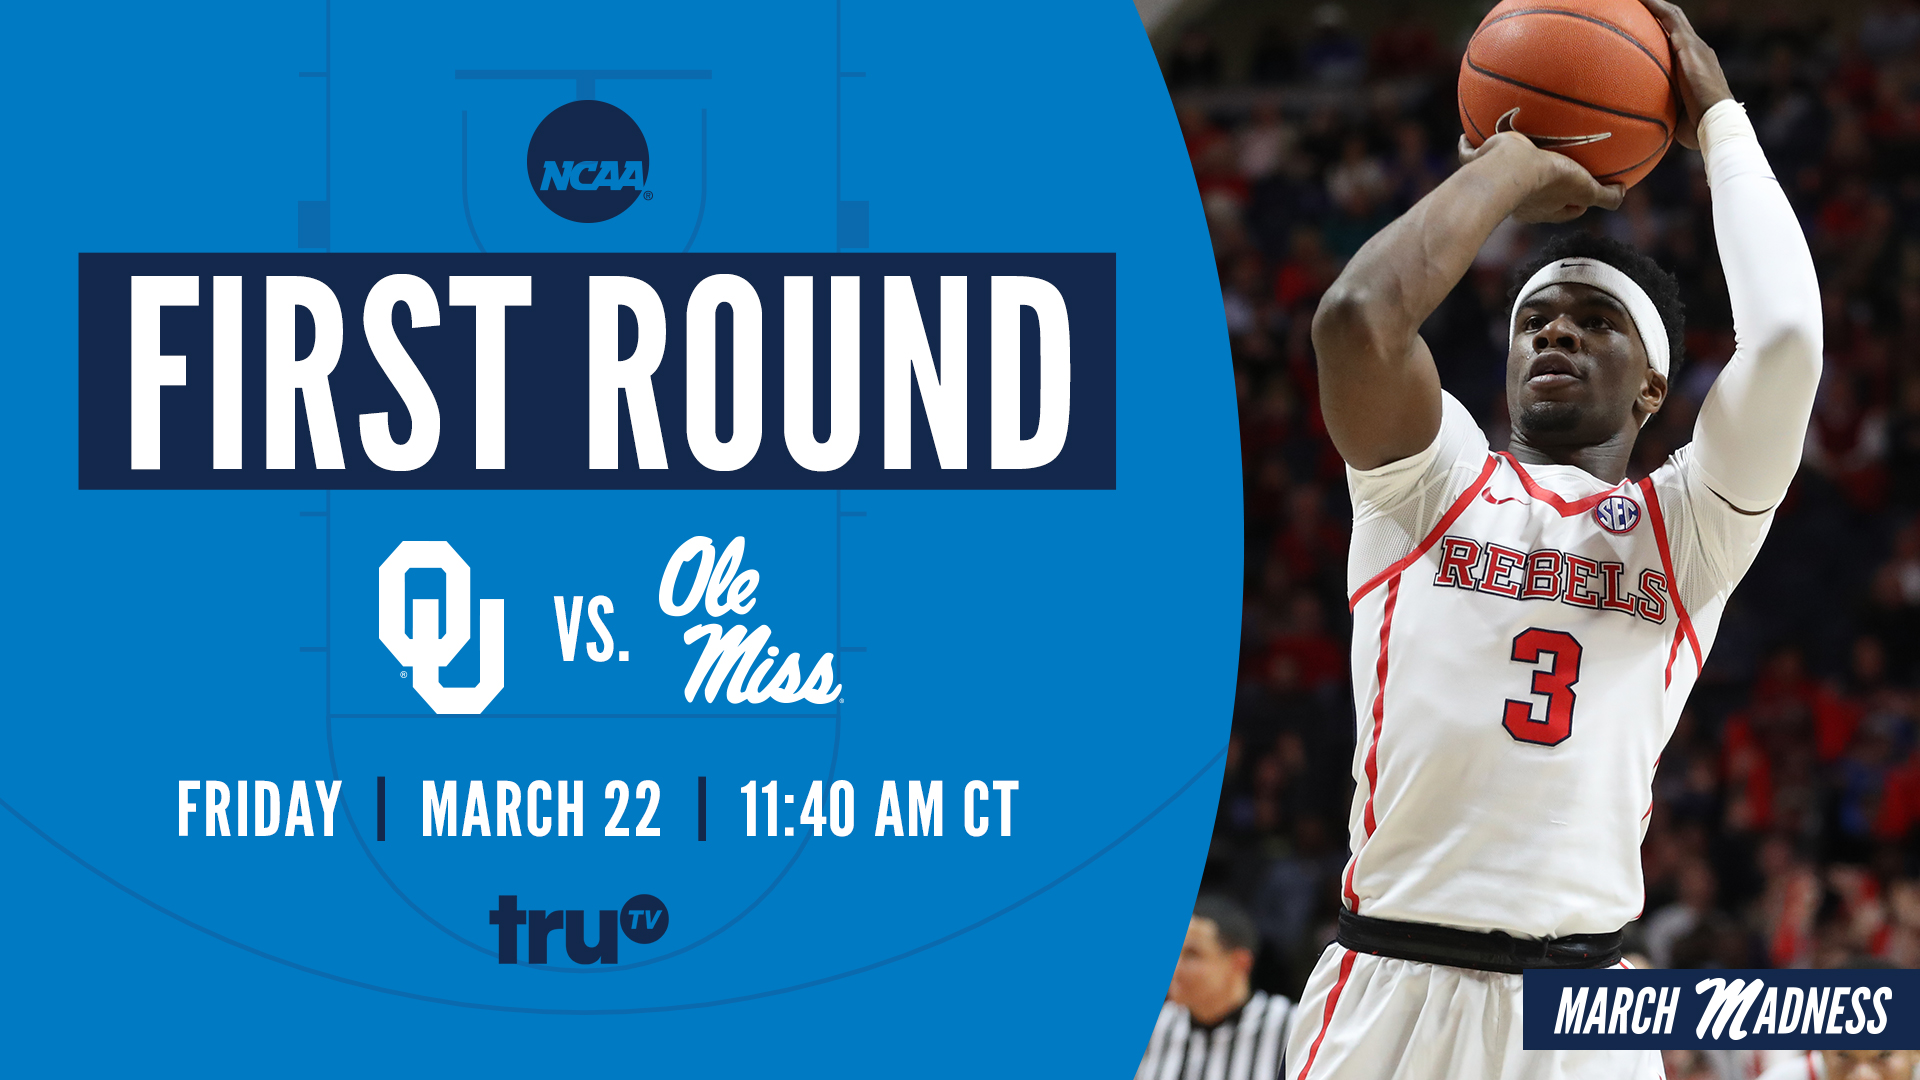 31b50a0109d Rebels Battle Oklahoma Friday to Begin NCAA Tournament - Ole Miss ...